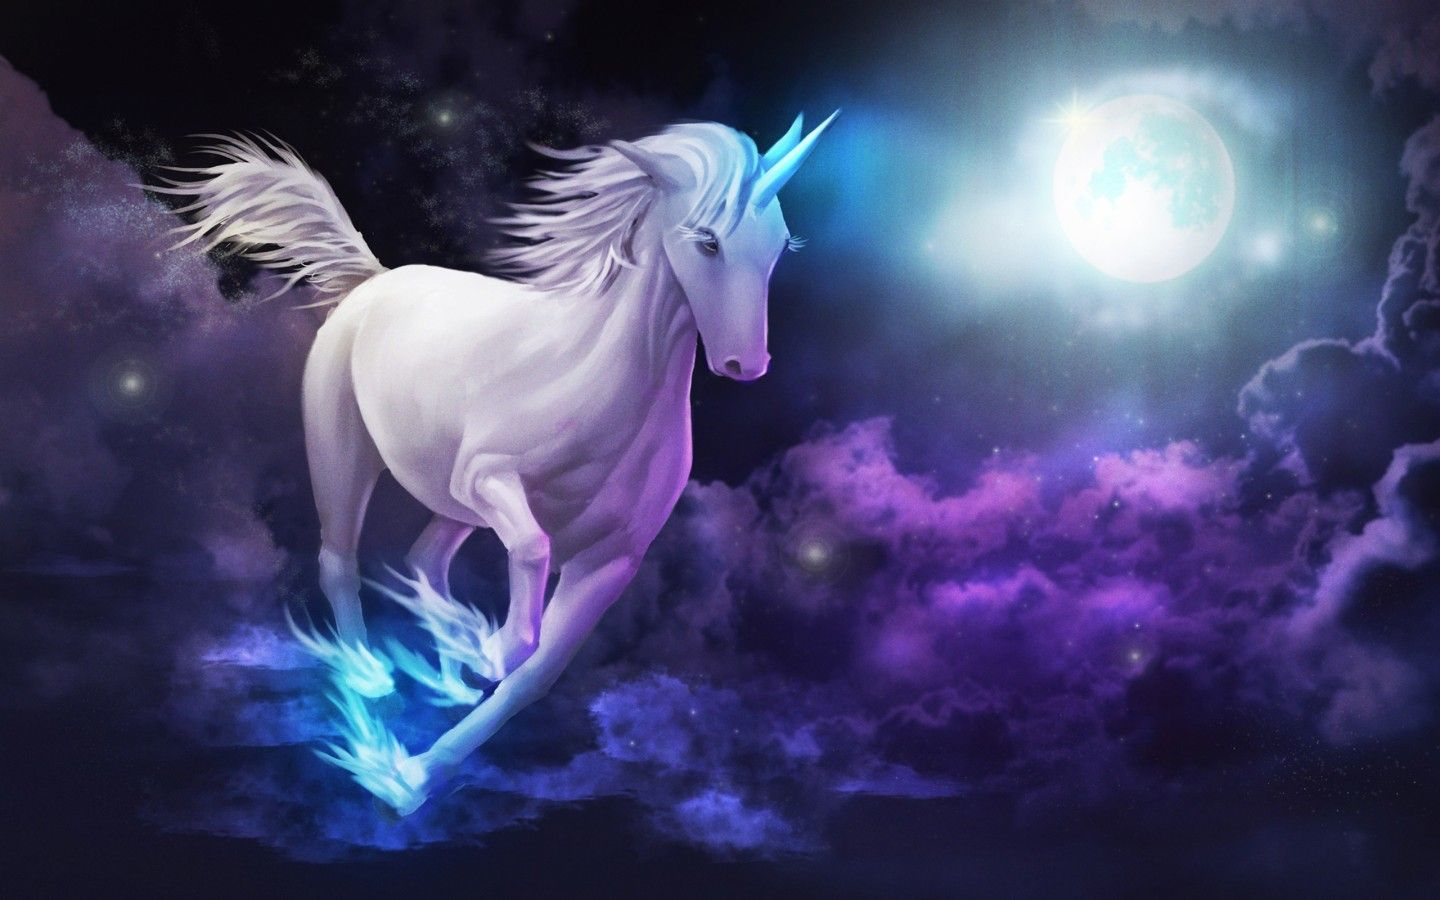 Unicorn Wallpapers High Quality Unicorn Poster Unicorn Wallpaper Unicorn Pictures Galaxy unicorn wallpaper for computer